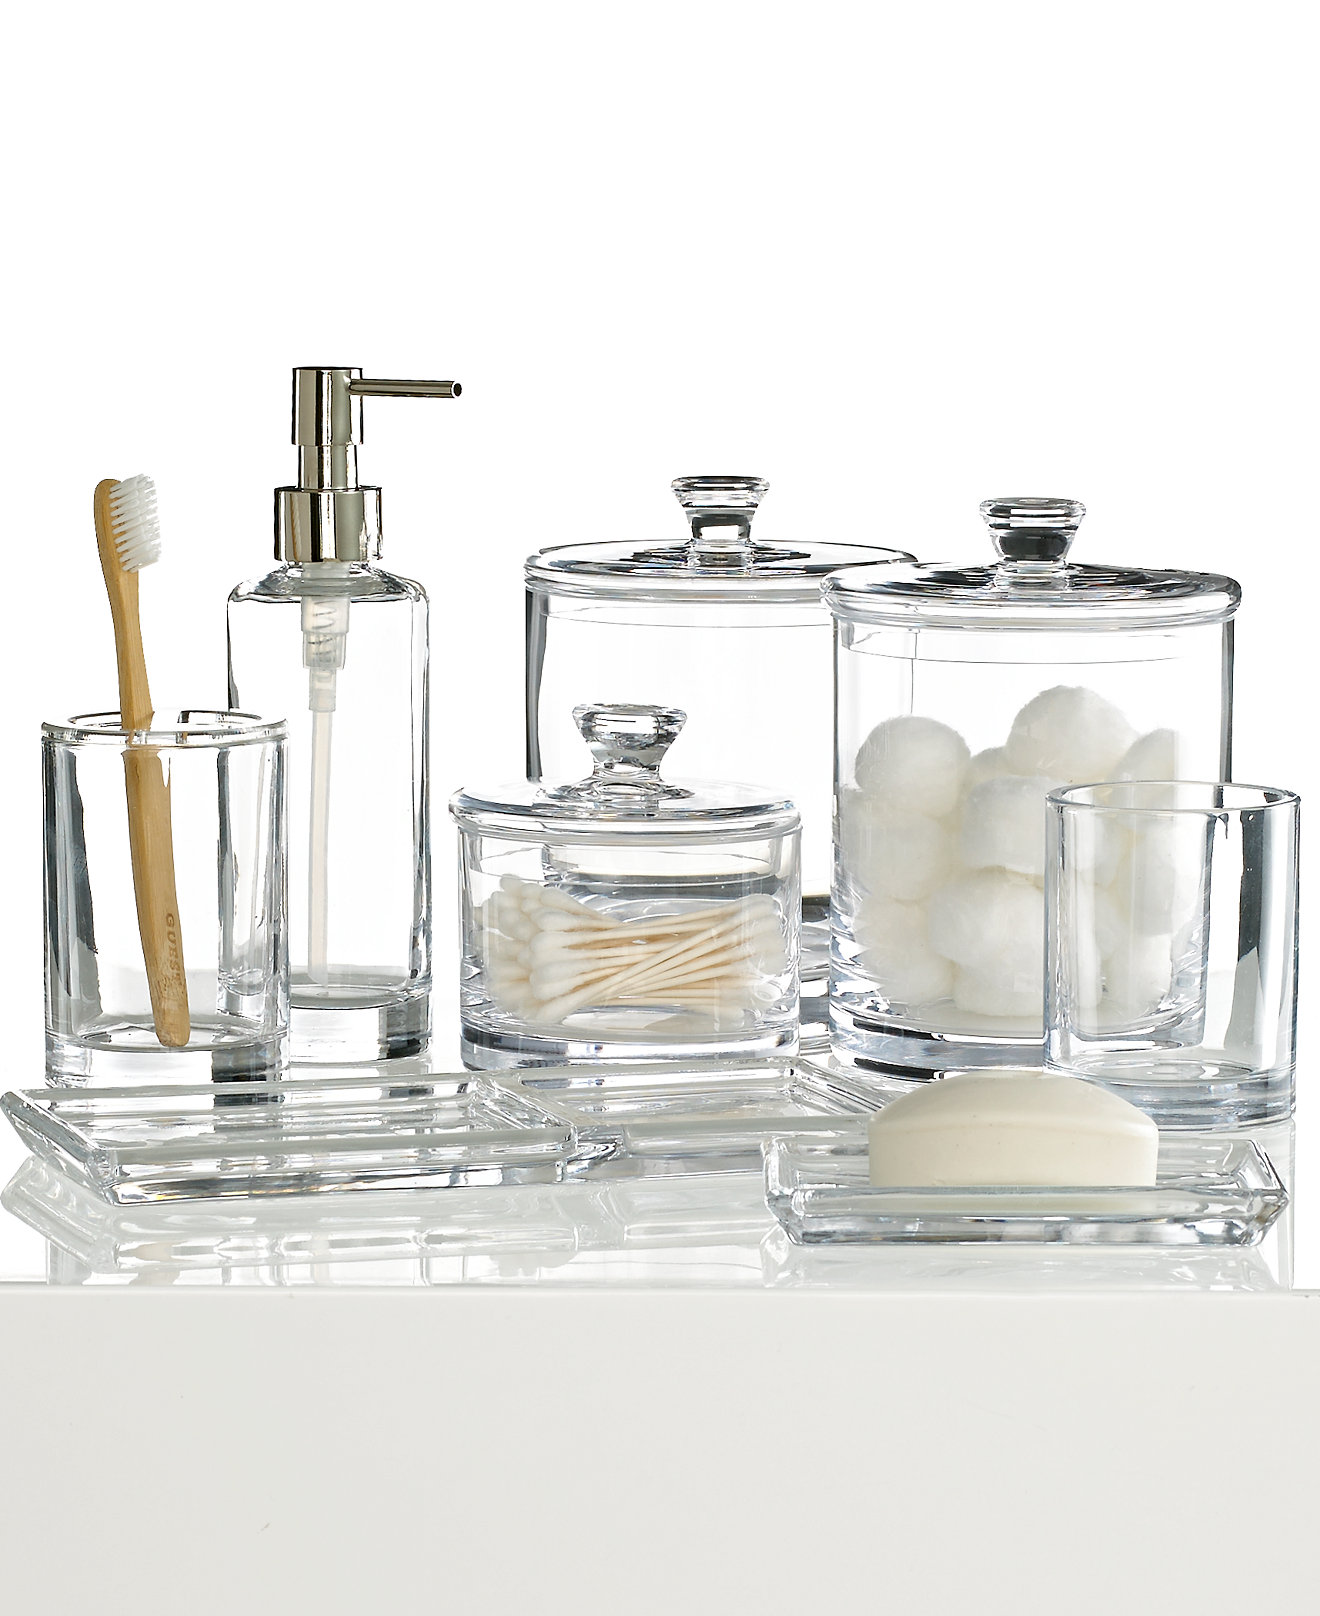 Bathroom accessories home for Bathroom accessory sets